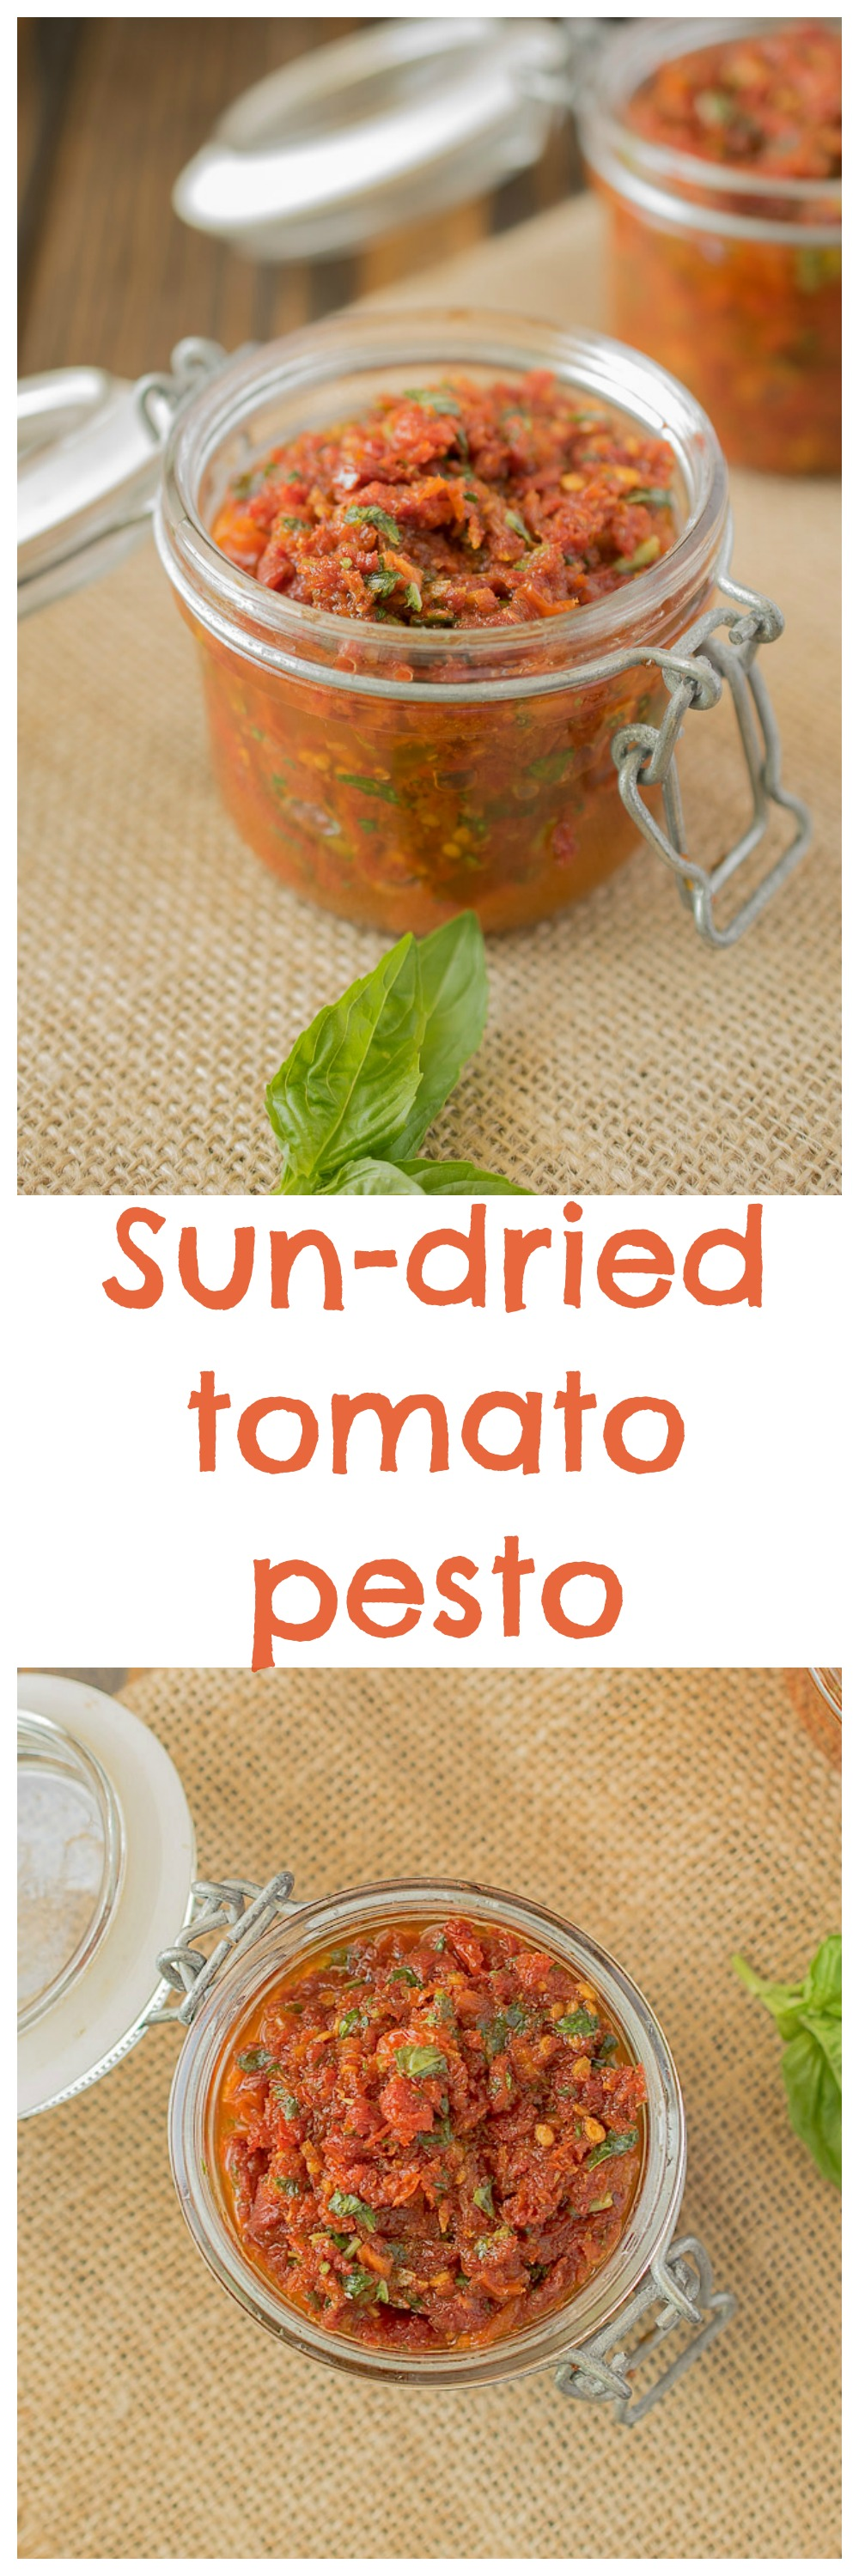 Sun-dried tomato pesto - Culinary Ginger